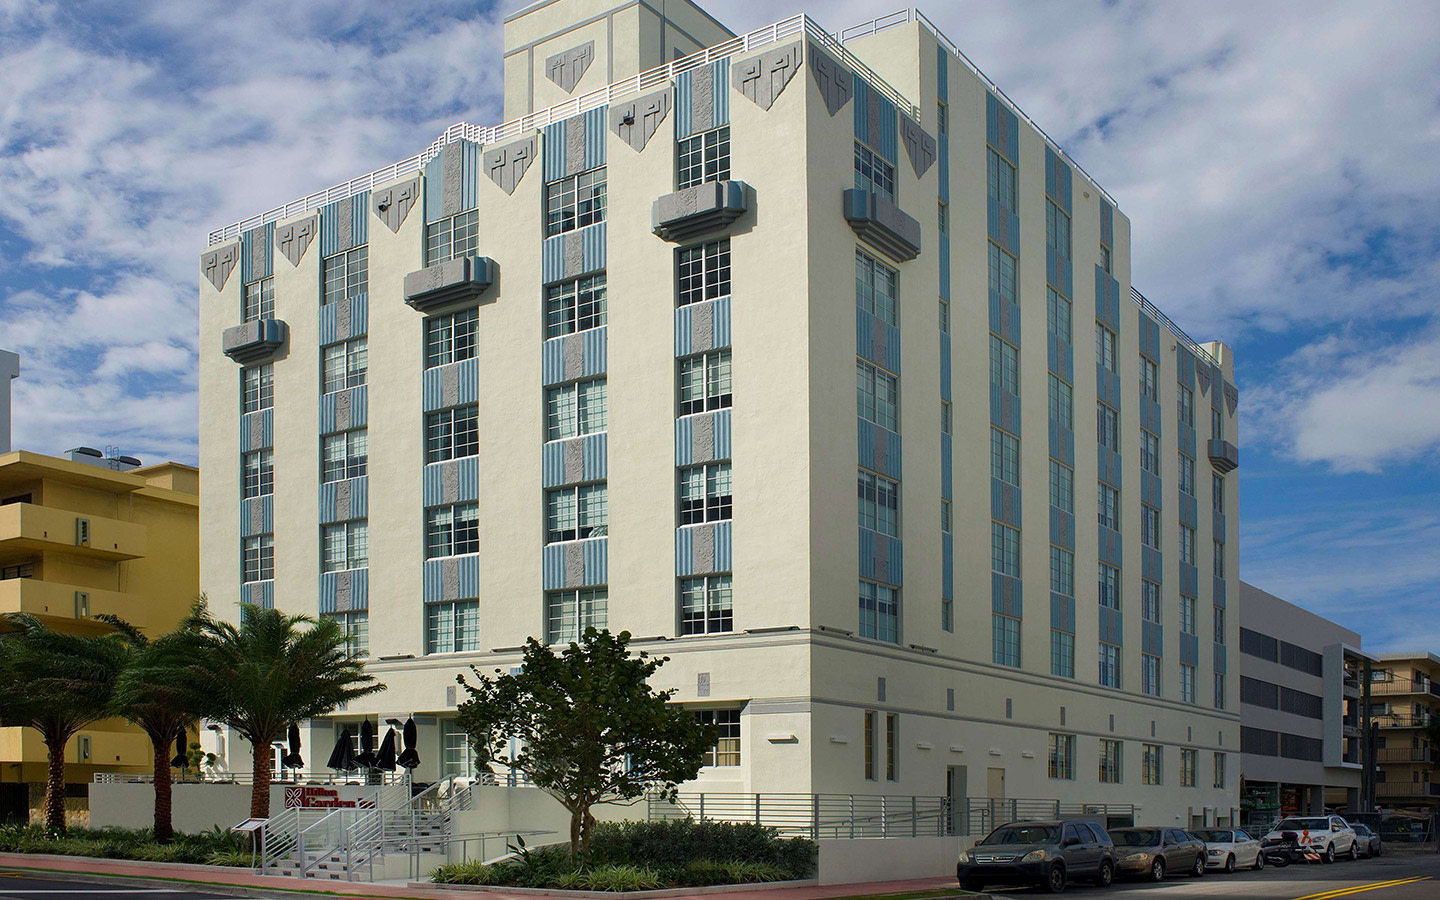 Hilton Garden Inn Miami South Beach - Royal Polo